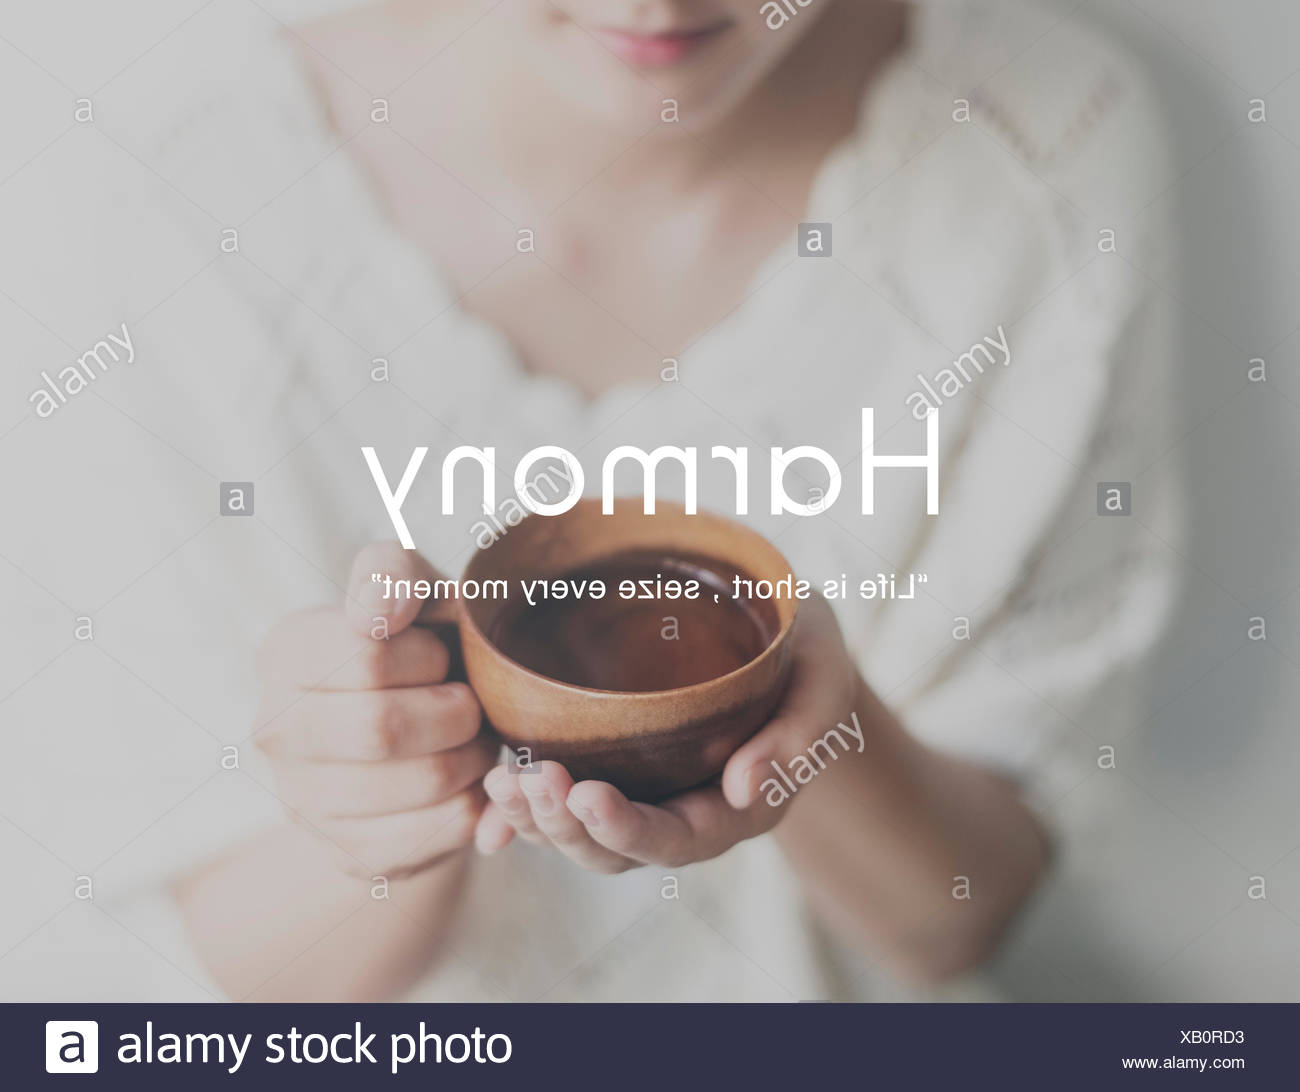 Harmony Happiness Activity Life Concept - Stock Image